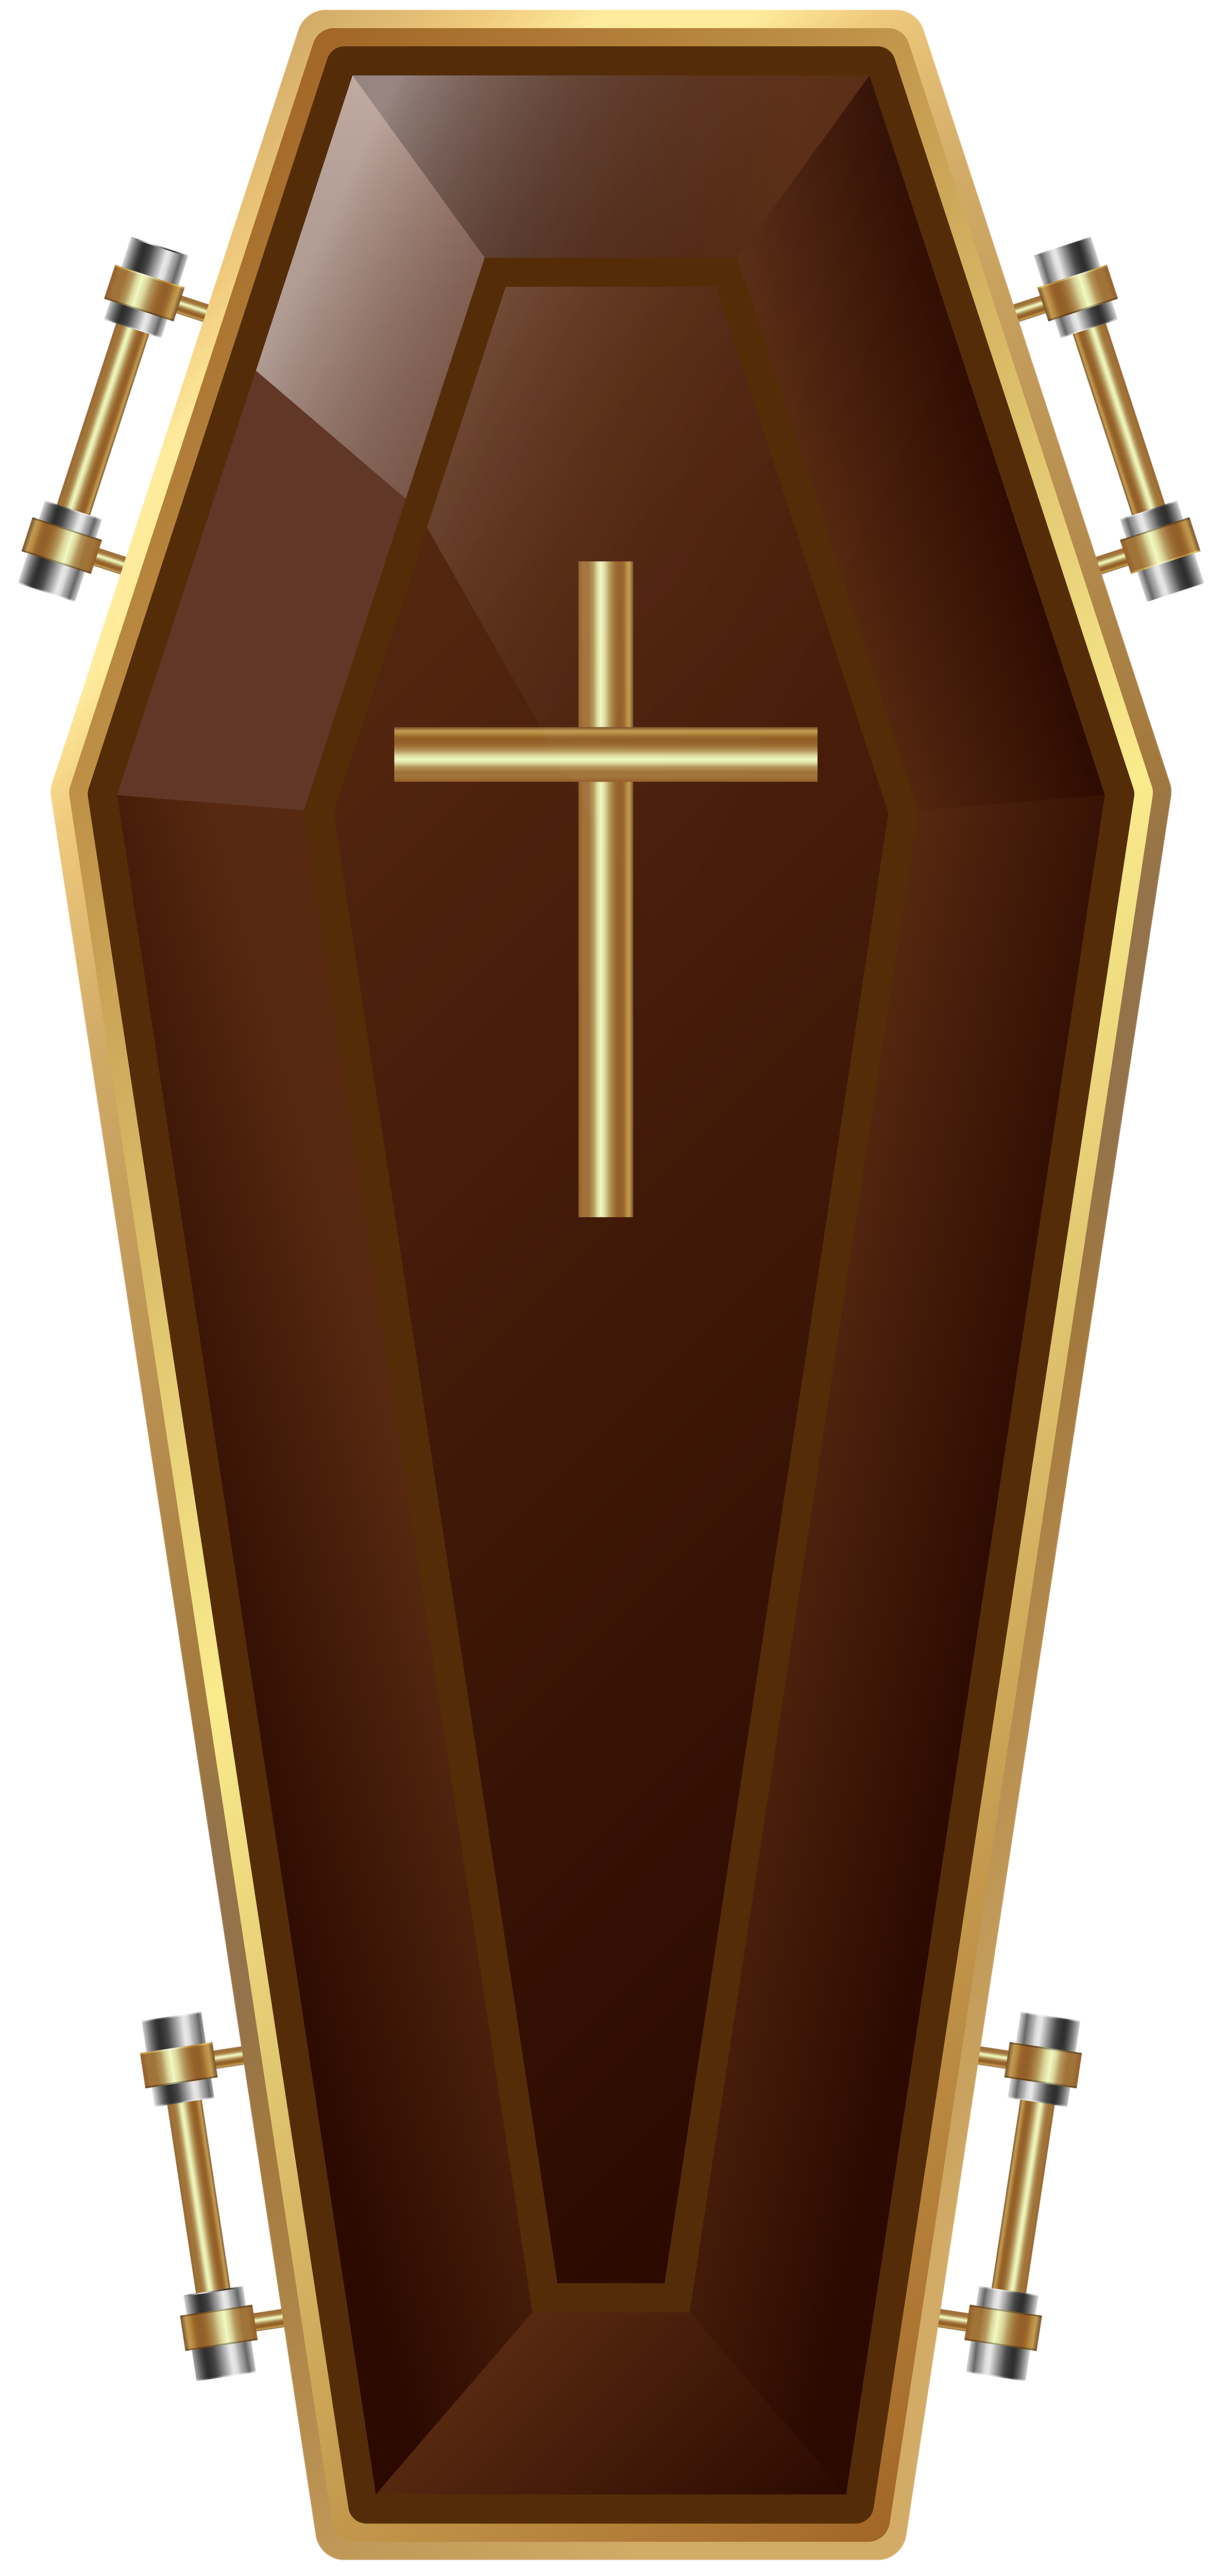 Coffin and candles png. Brown transparent image gallery